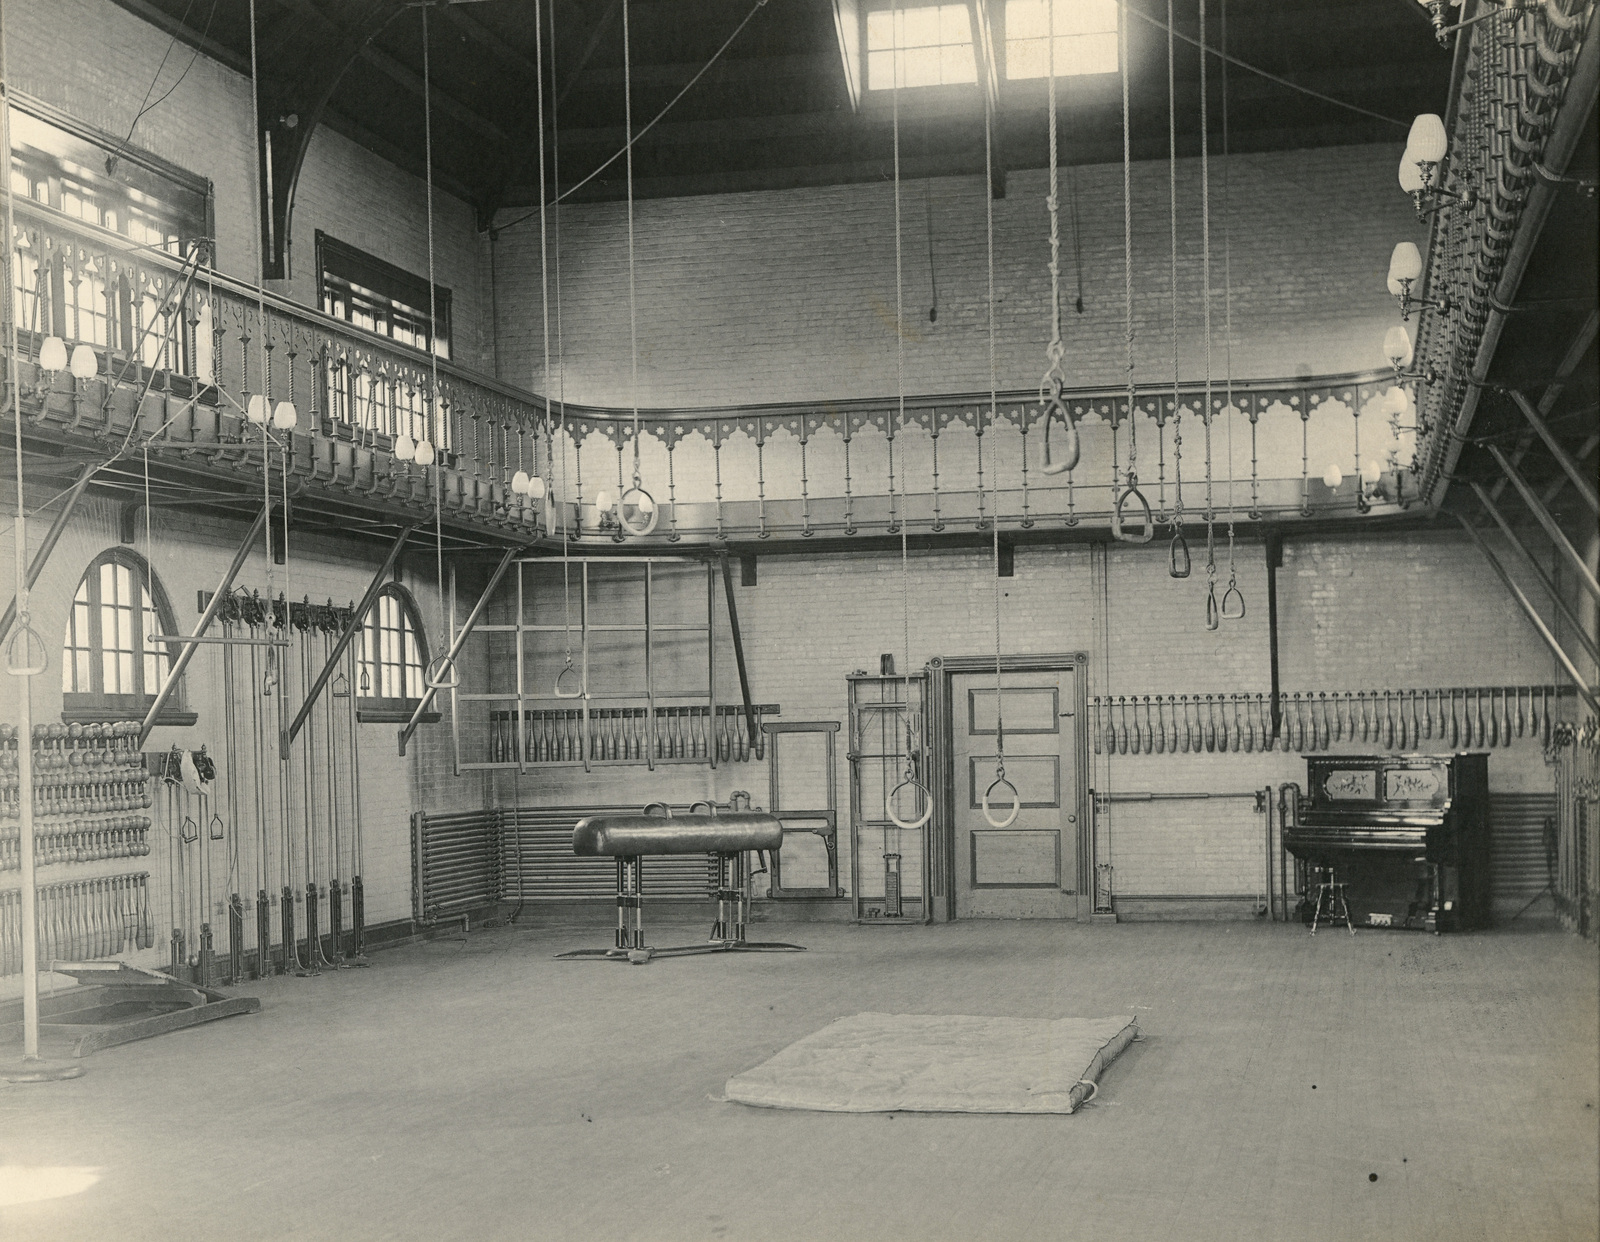 First Bryn Mawr College Gymnasium